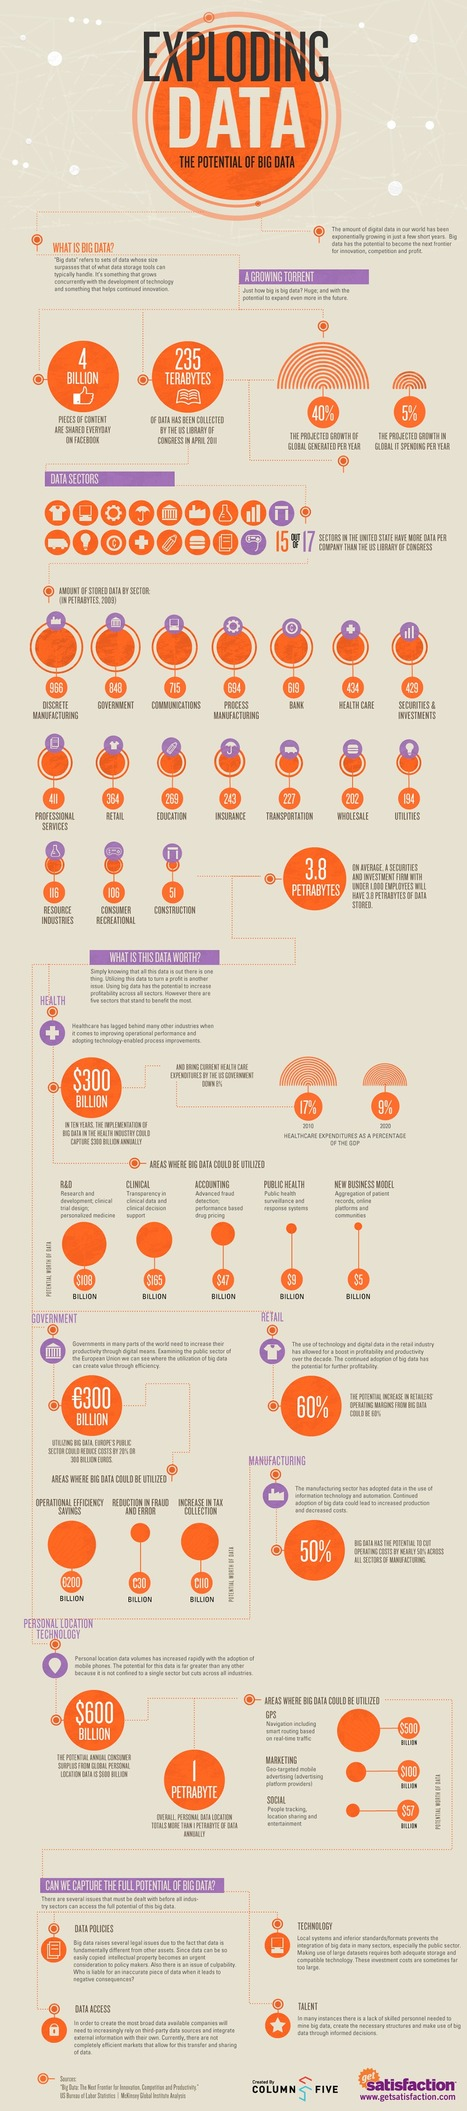 Exploding Data — The Potential Of Big Data | Visual.ly | Big data, health and biomedicine | Scoop.it